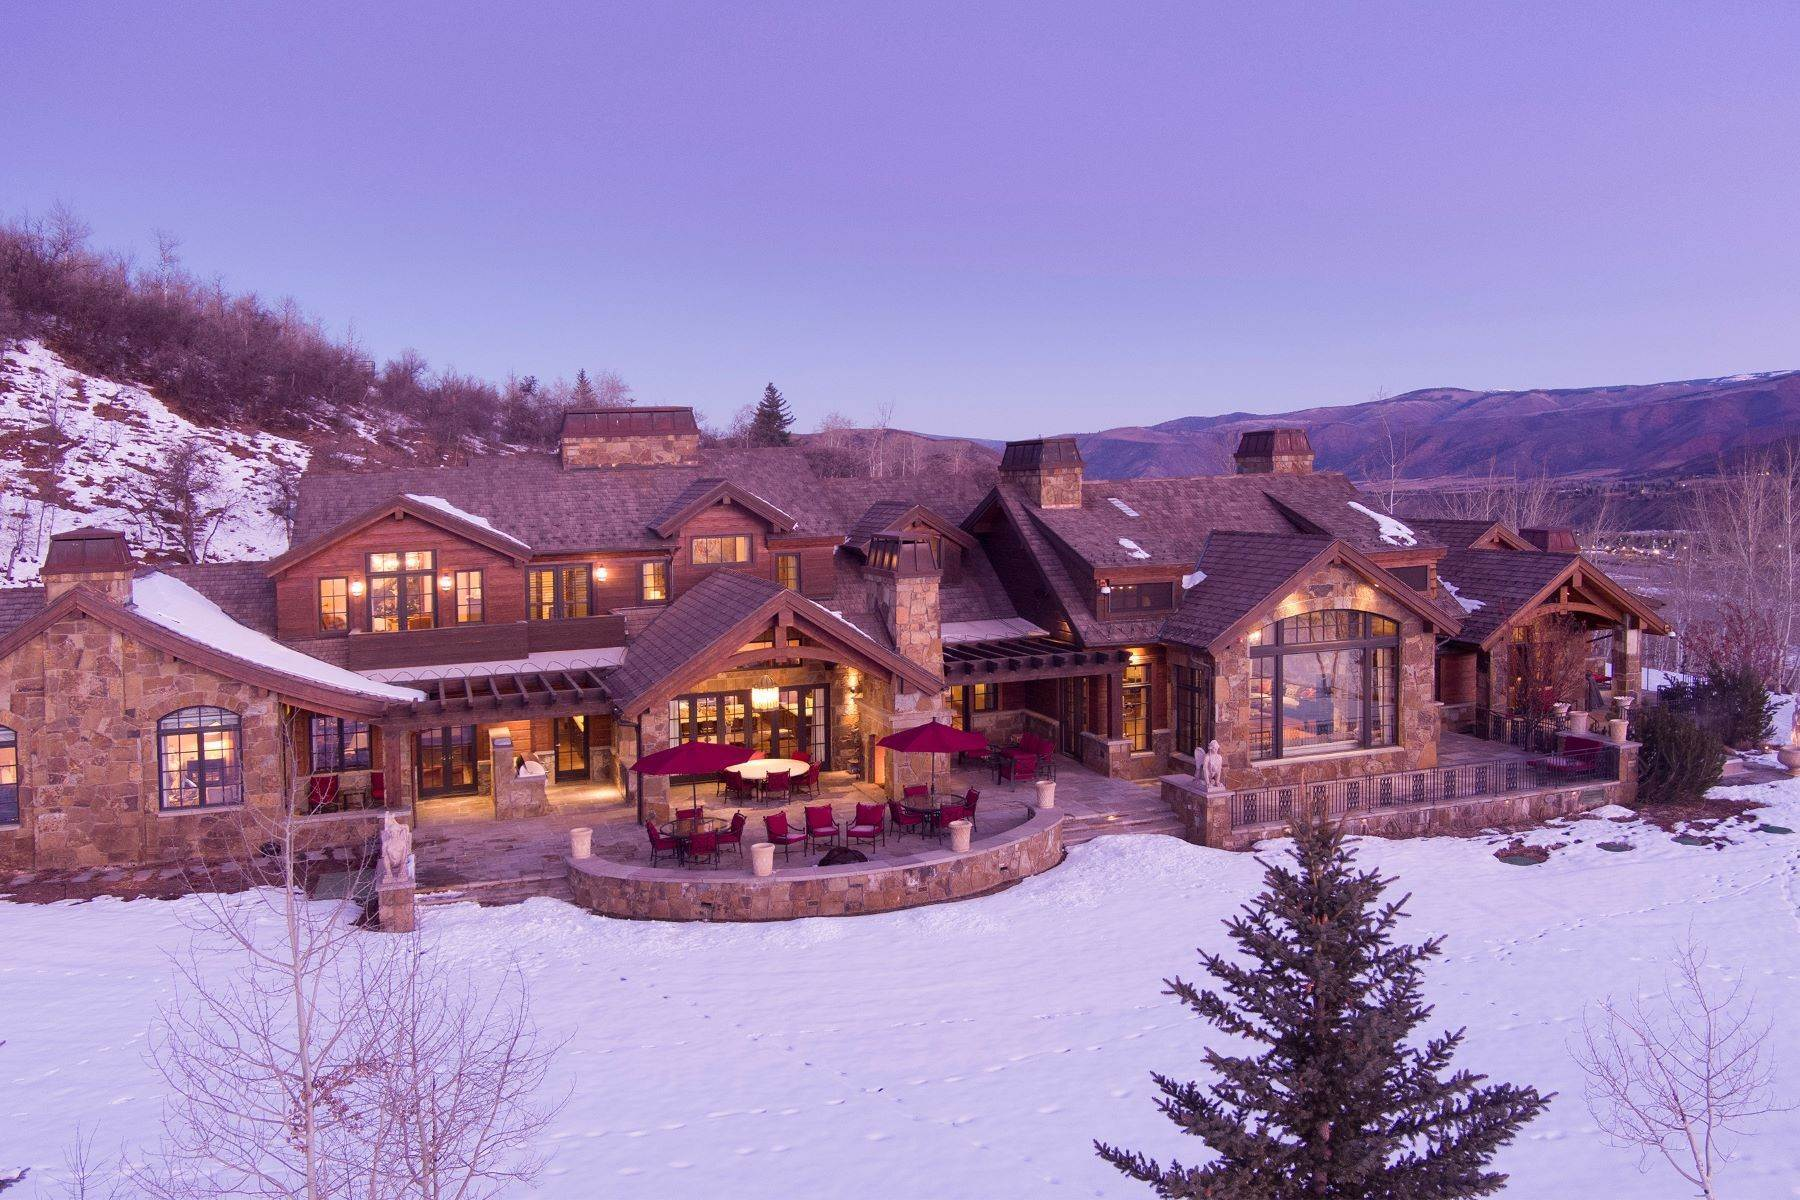 Single Family Homes for Active at Talk About Ski-In/Ski-Out! 220 Buttermilk Lane Aspen, Colorado 81611 United States